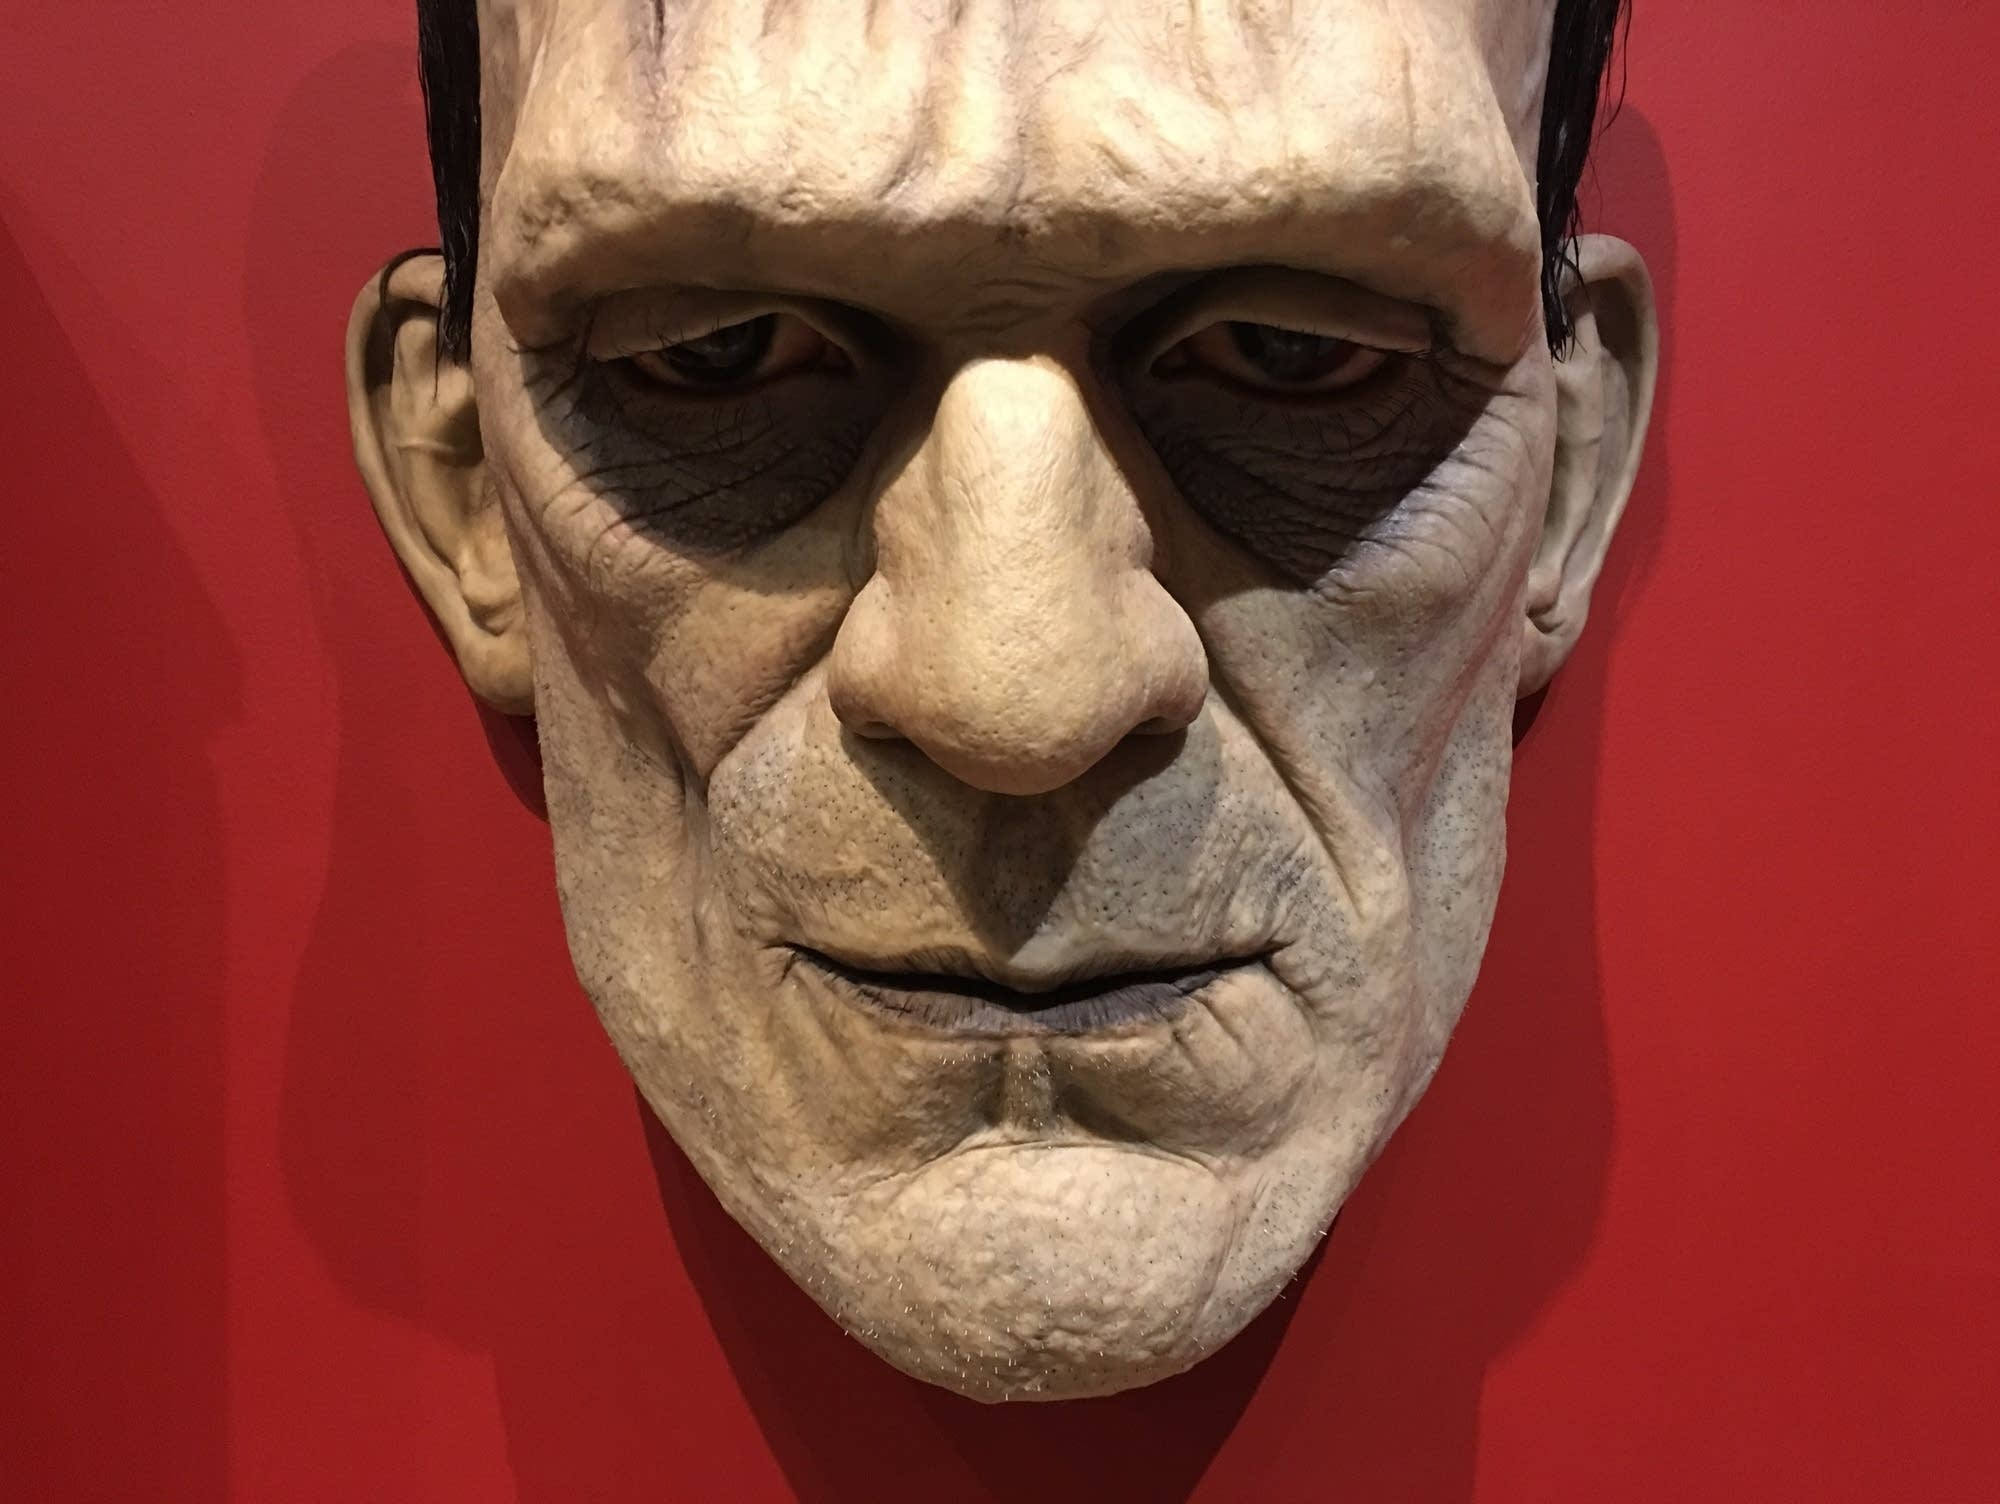 An outsize model of Frankenstein's monster's face